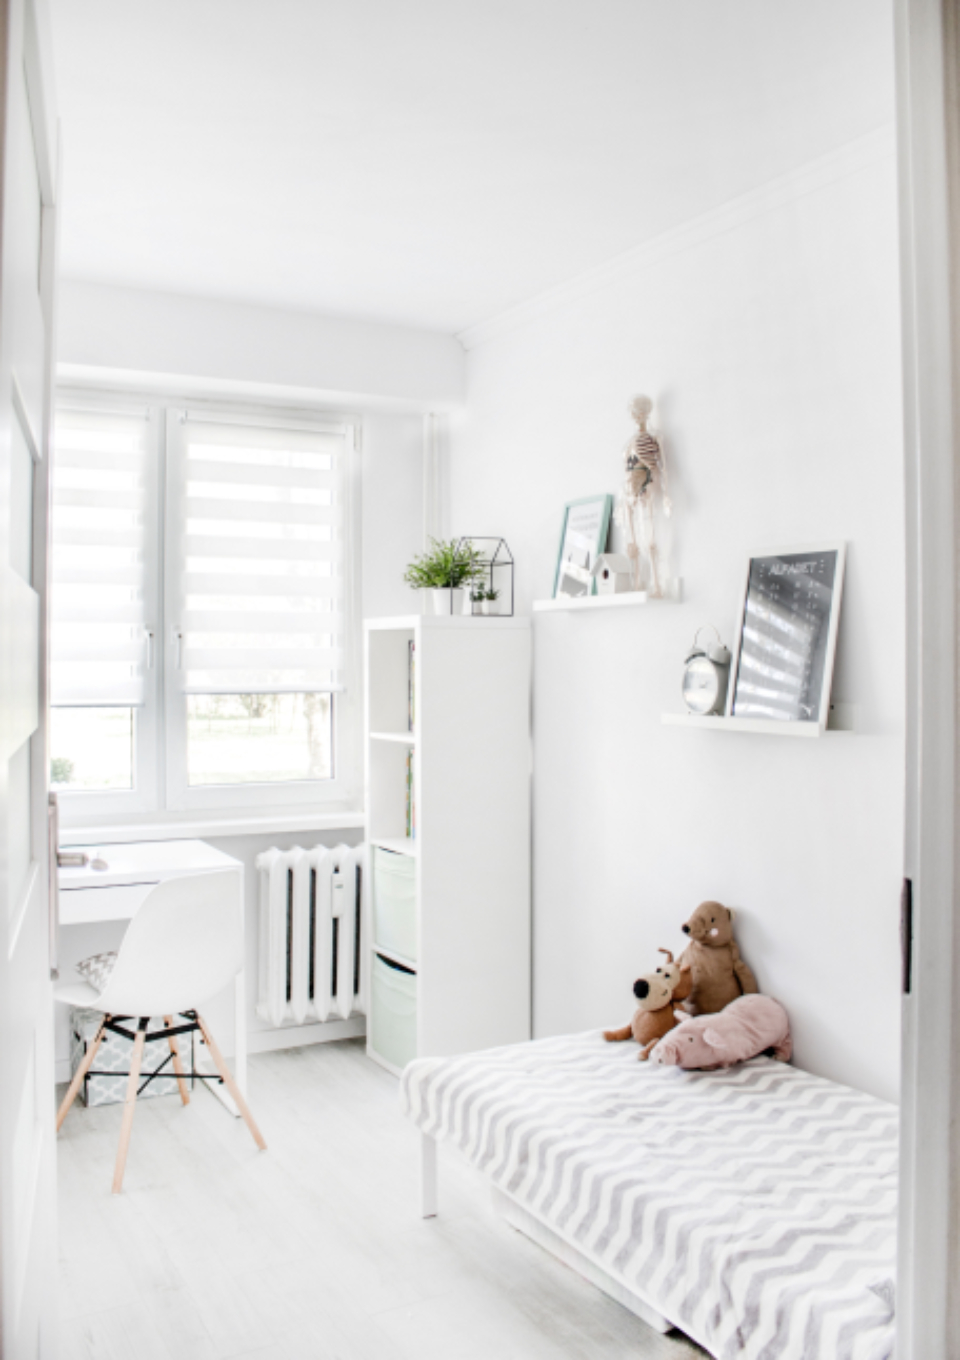 child bedroom white minimal teddy bear bed house window blinds chair moder contemporary mirror